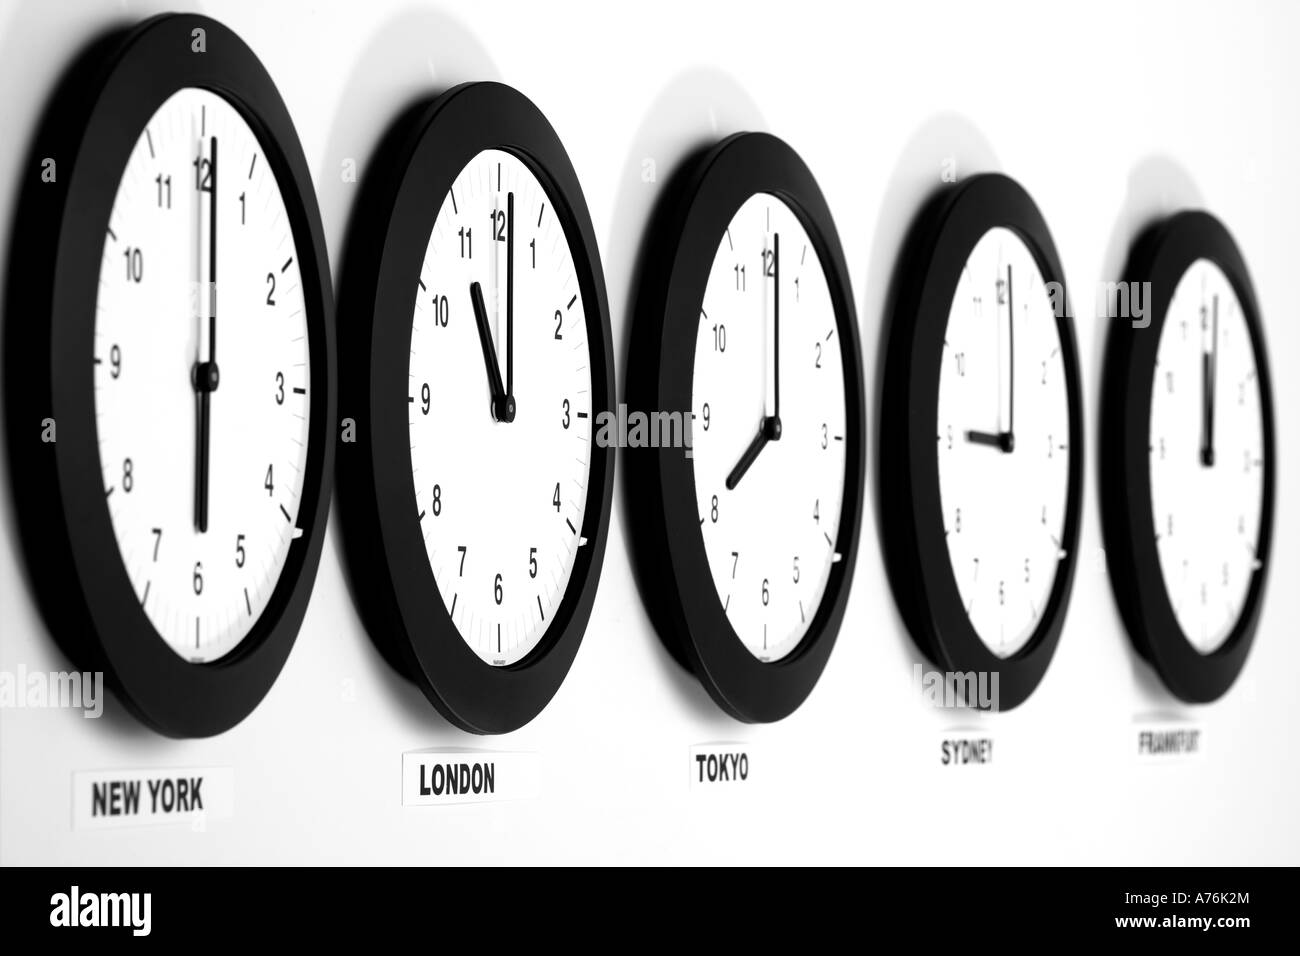 Clocks On Wall Symbol For Greenwich Mean Time Stock Photo 11741323